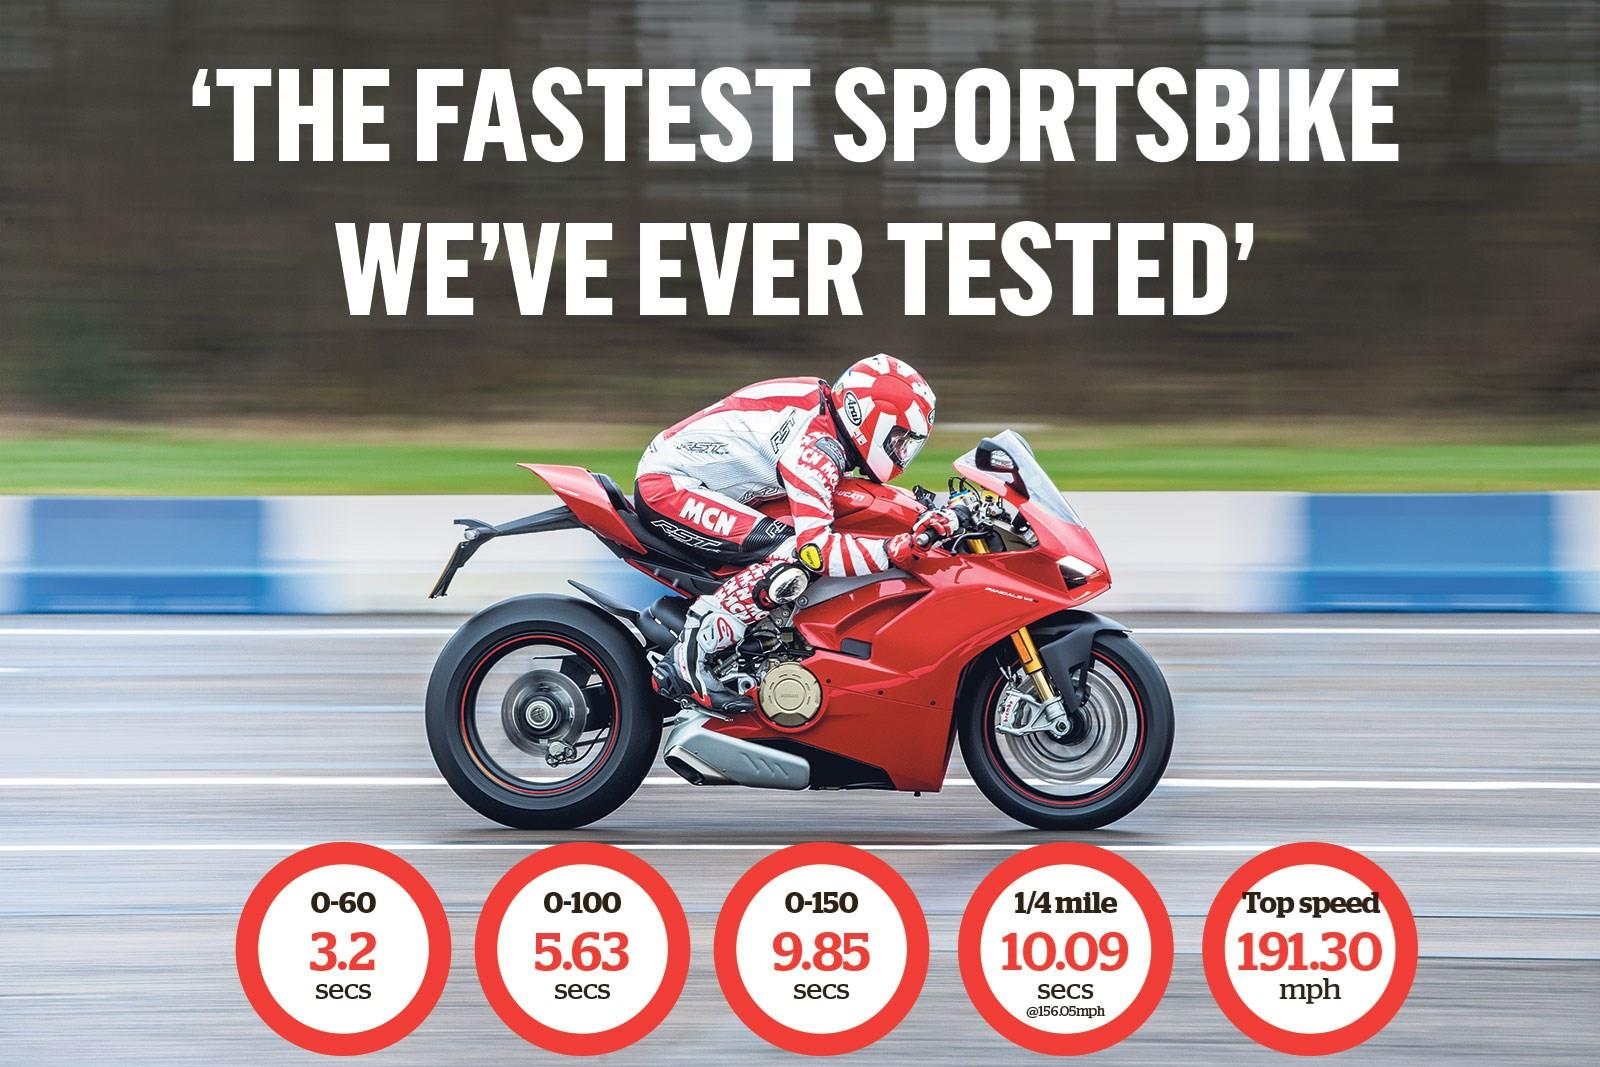 The Ducati Panigale V4S blew us away last year